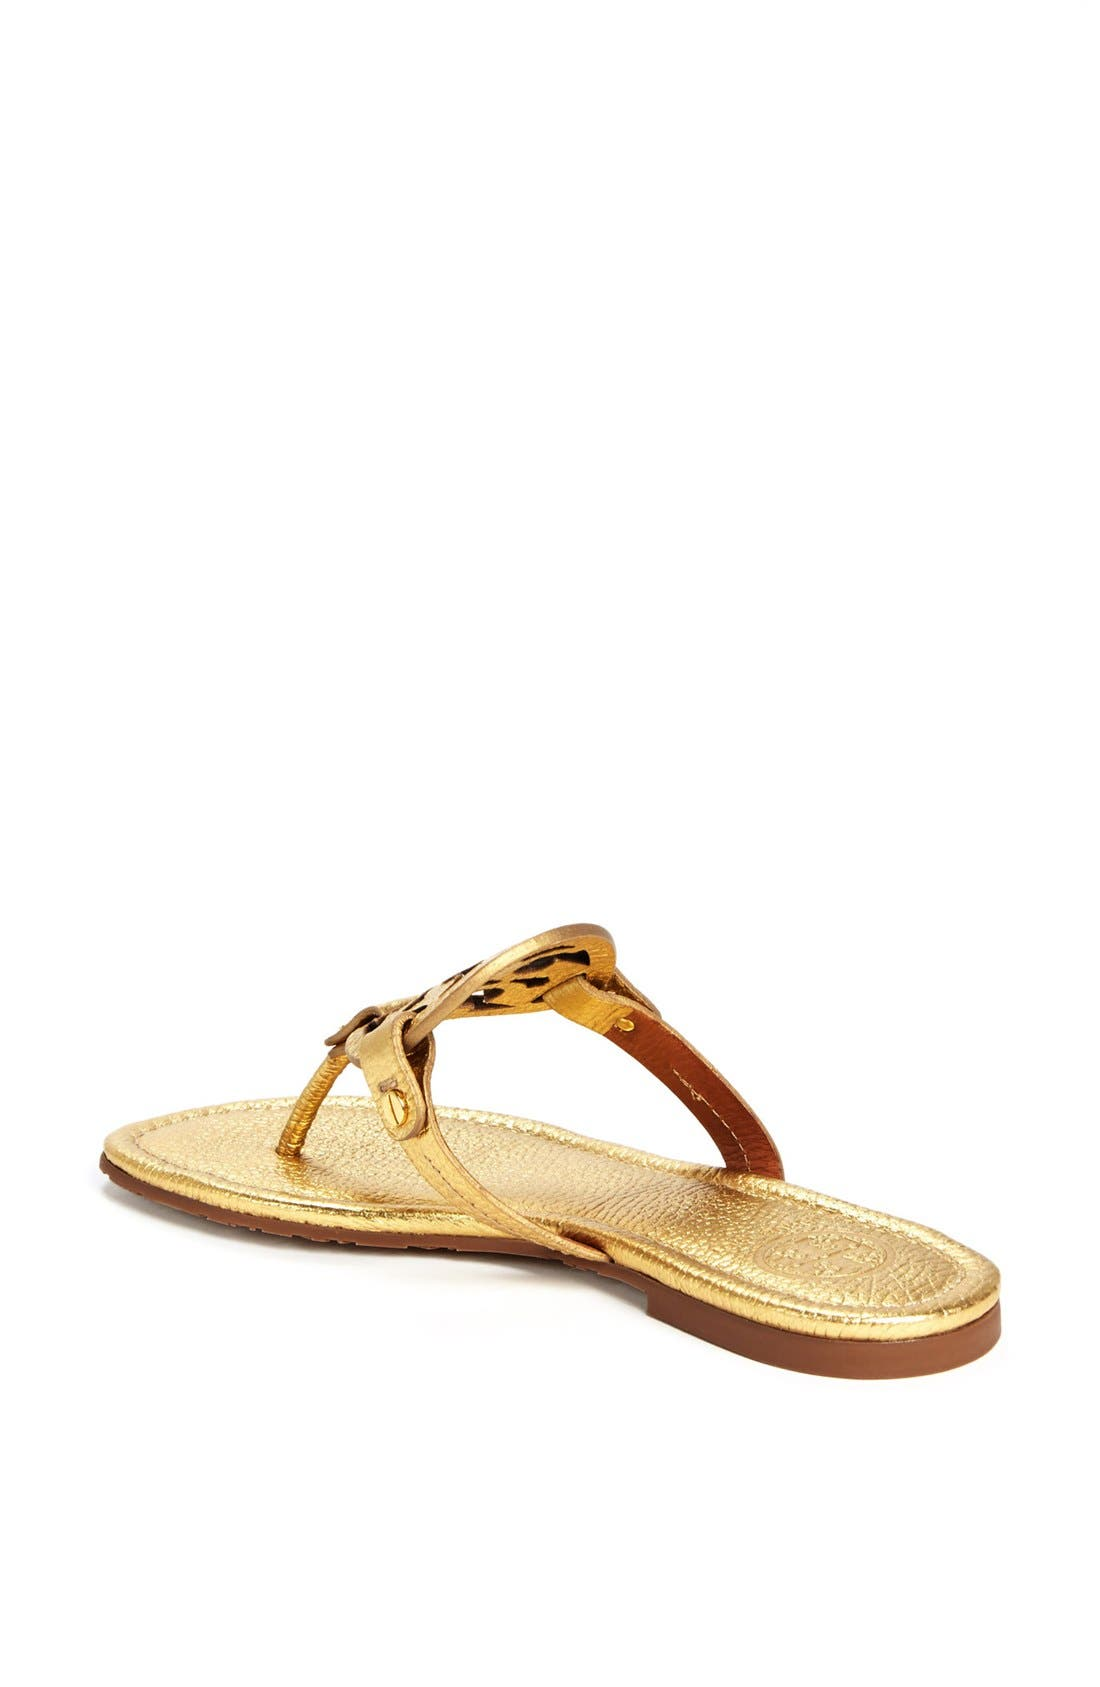 Alternate Image 2  - Tory Burch 'Miller' Flip Flop (Women)